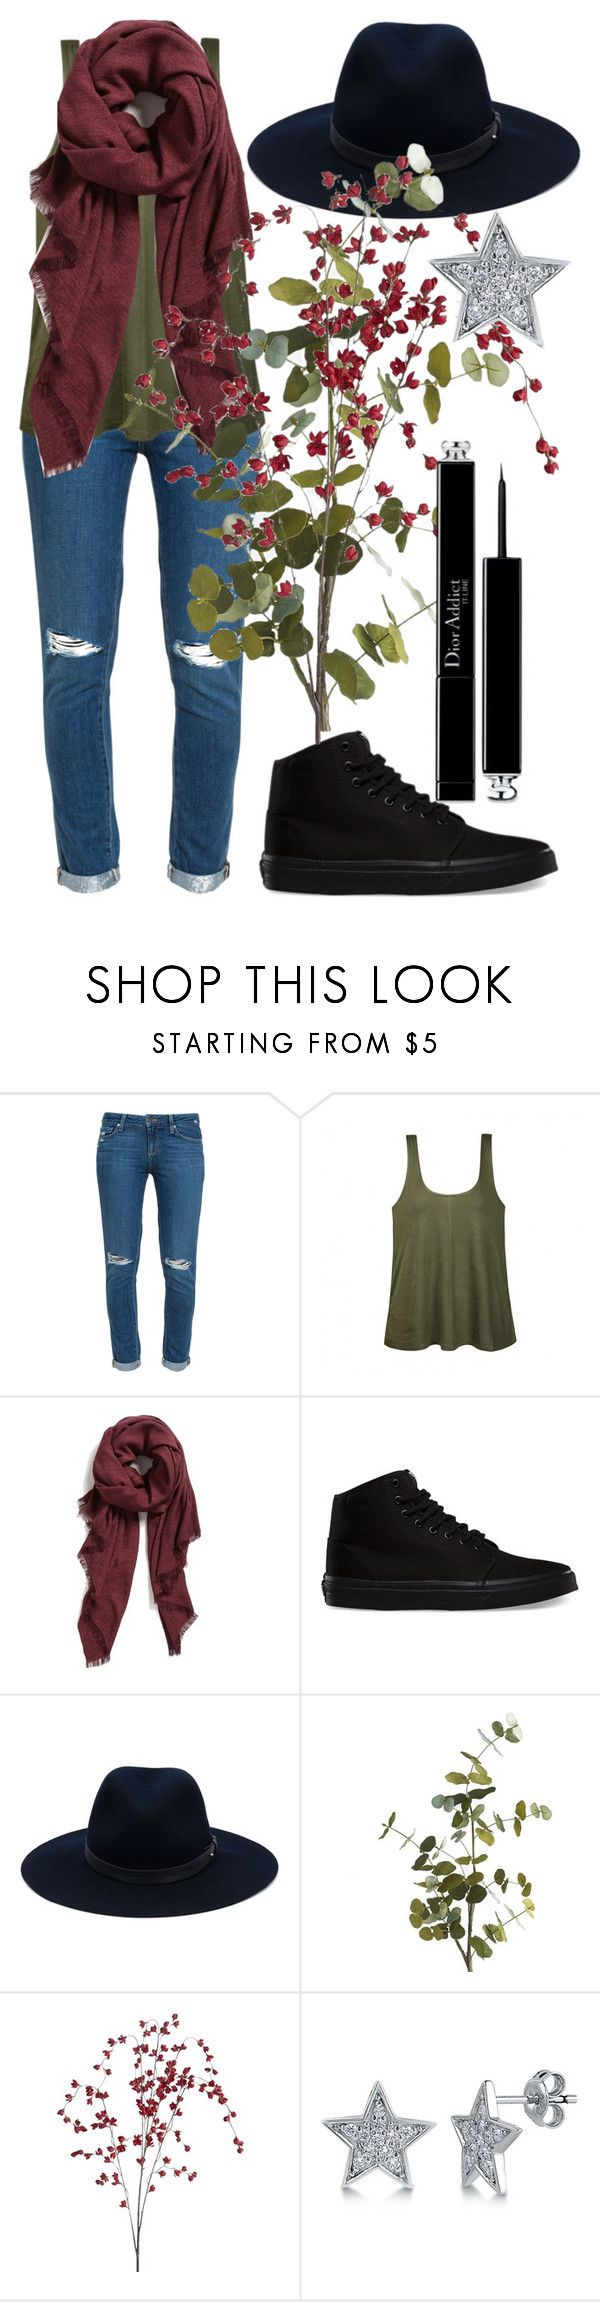 """Luanna Perez"" by yuni2119 ❤ liked on Polyvore featuring Paige Denim, Ally Fashion, Halogen, Vans, rag & bone, Pier 1 Imports, BERRICLE and Christian Dior"